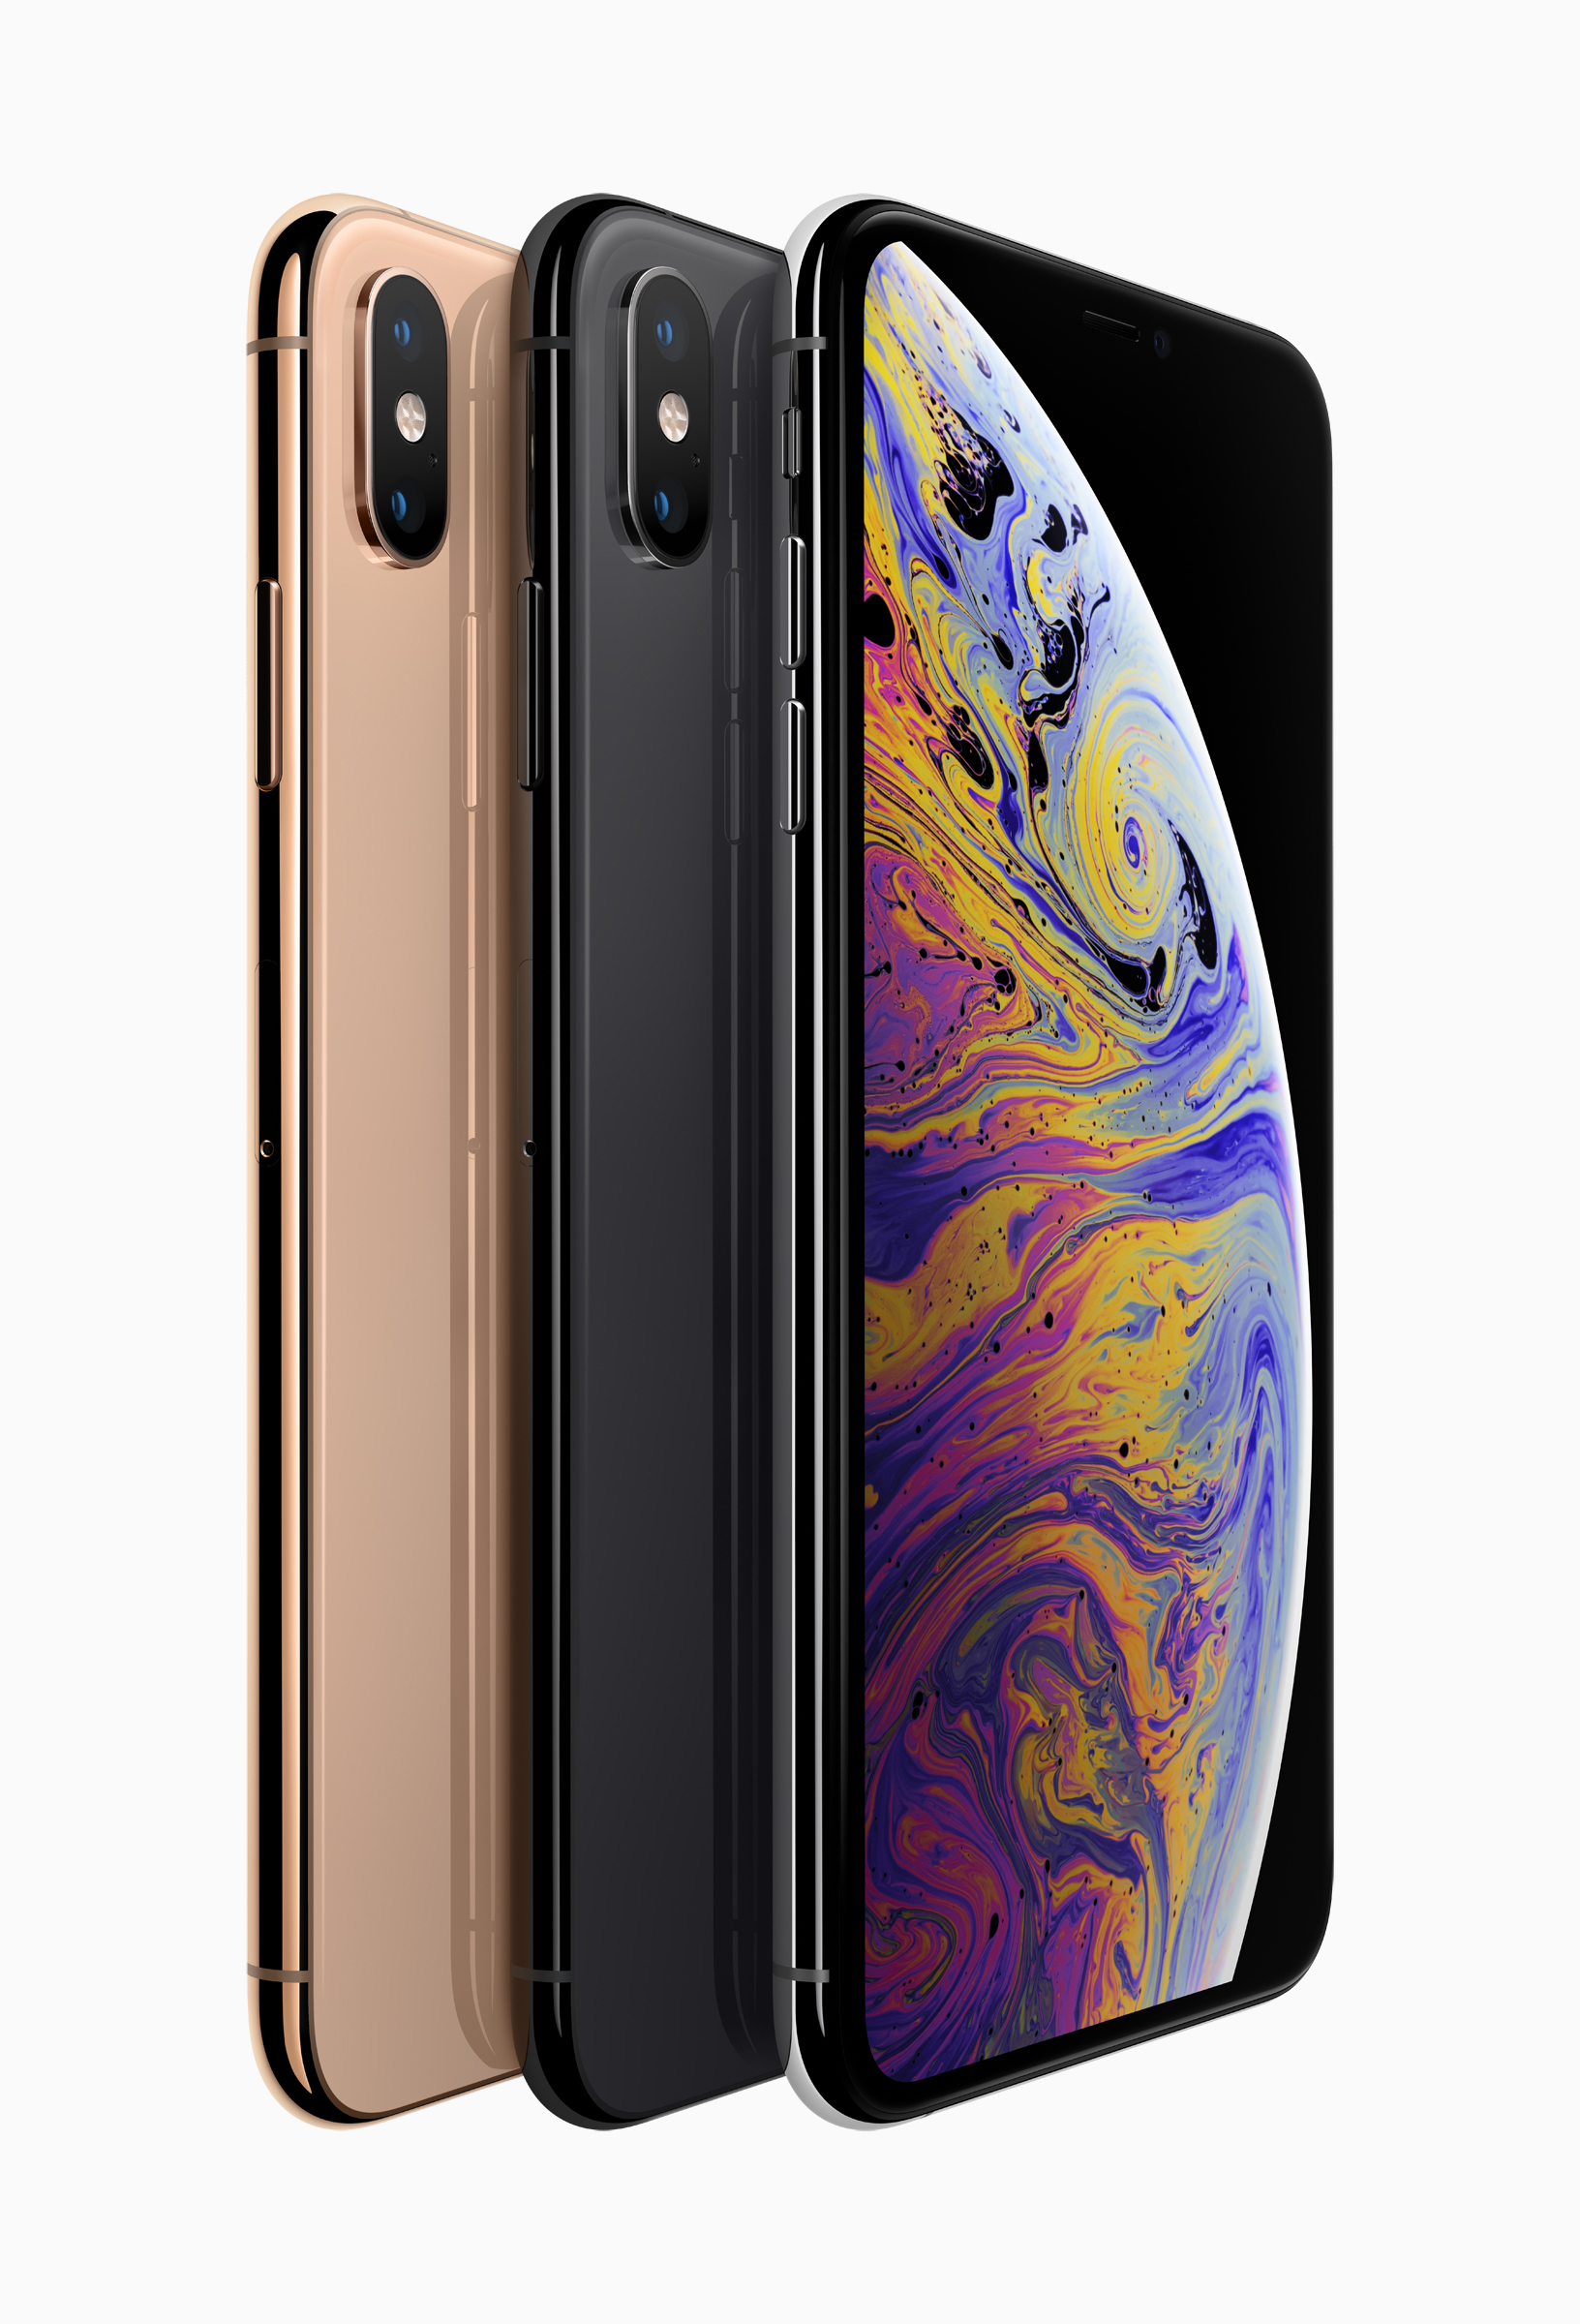 Apple iPhone Xs and iPhone Xs Max new